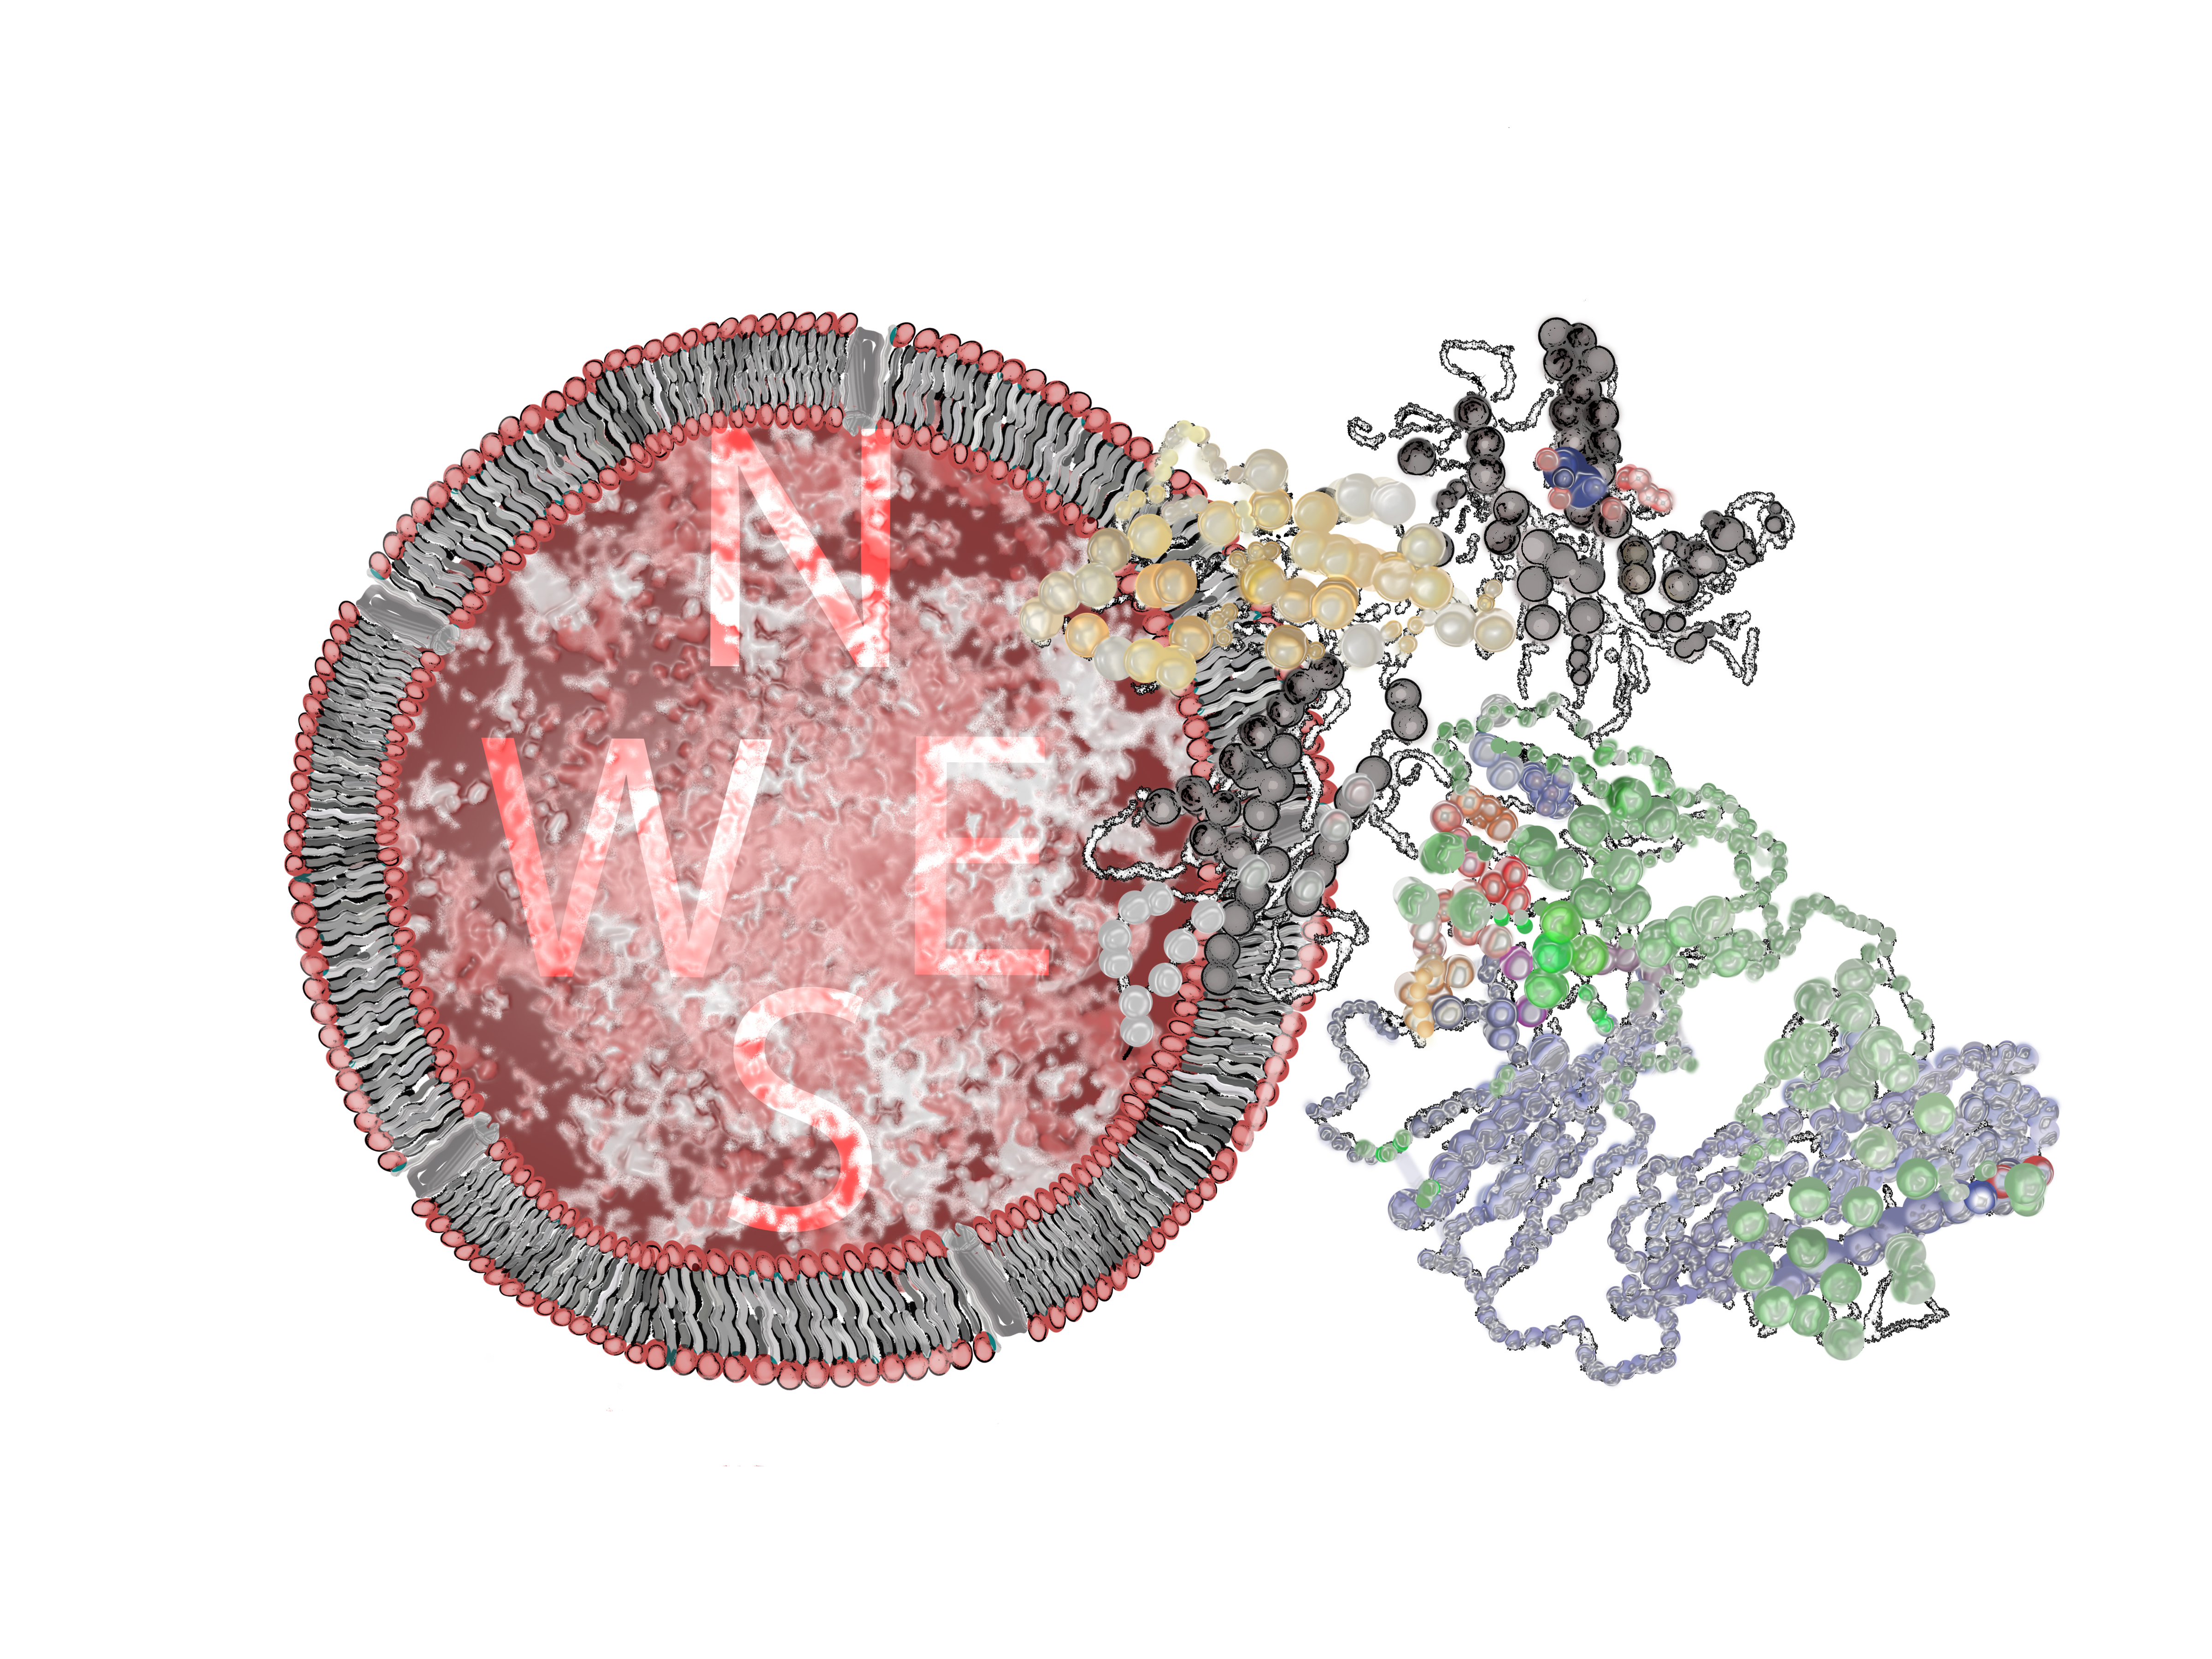 A class of γδ T cell receptors recognize the underside of the antigen-presenting molecule MR1